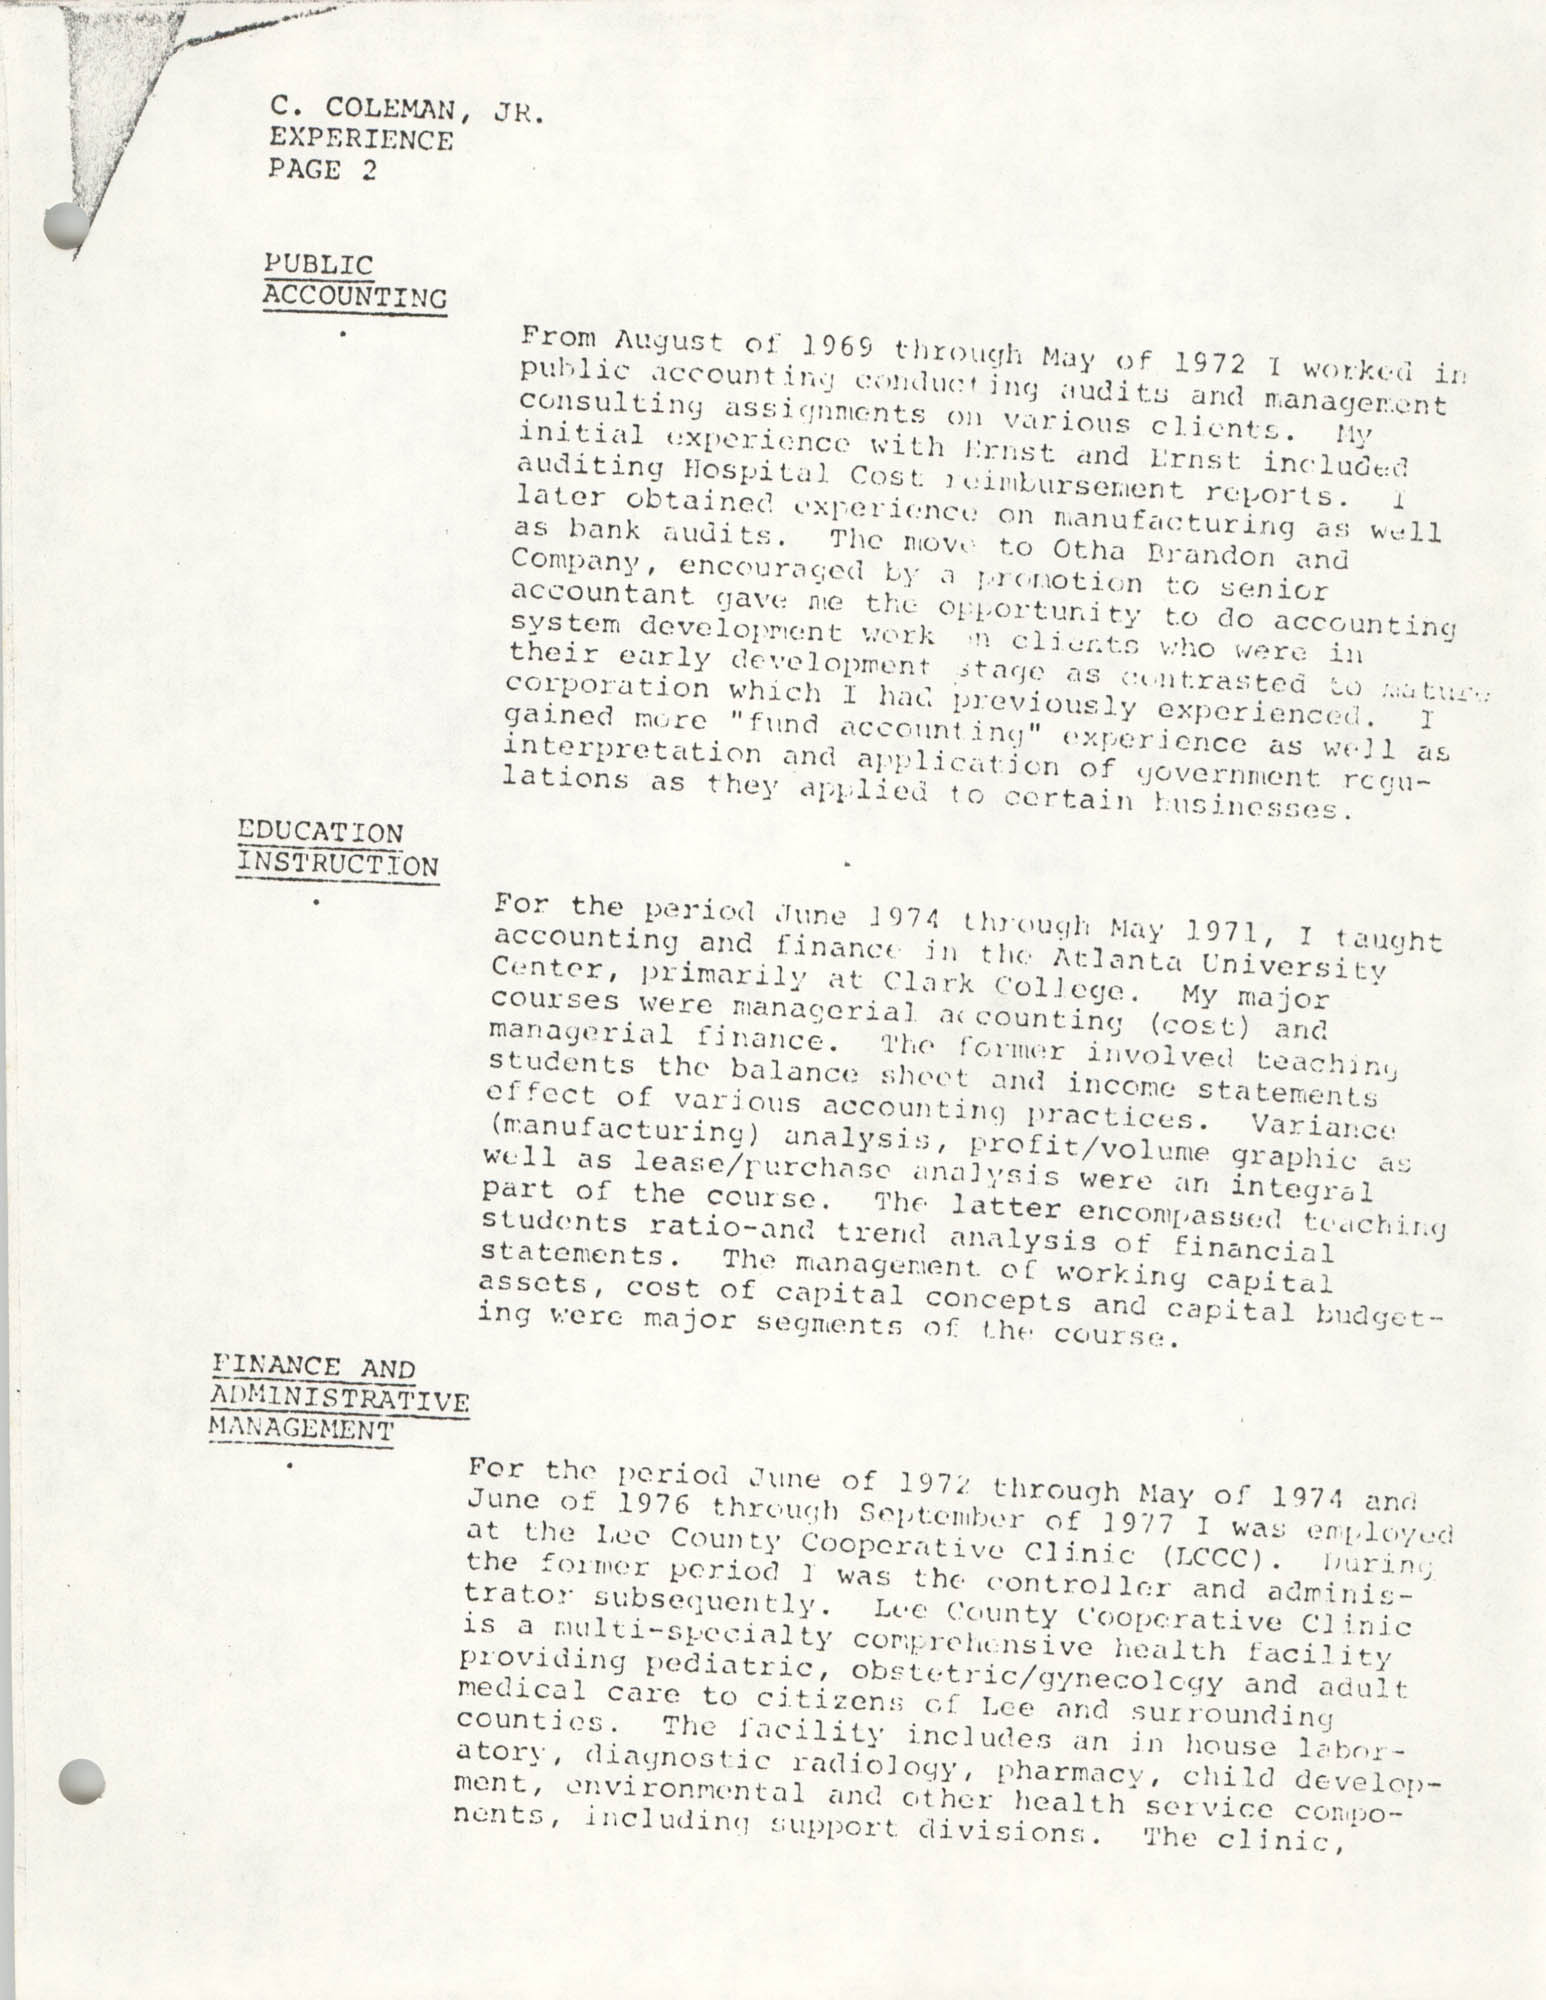 COBRA Consultant Resumes, Clarence Coleman, Jr., Page 2